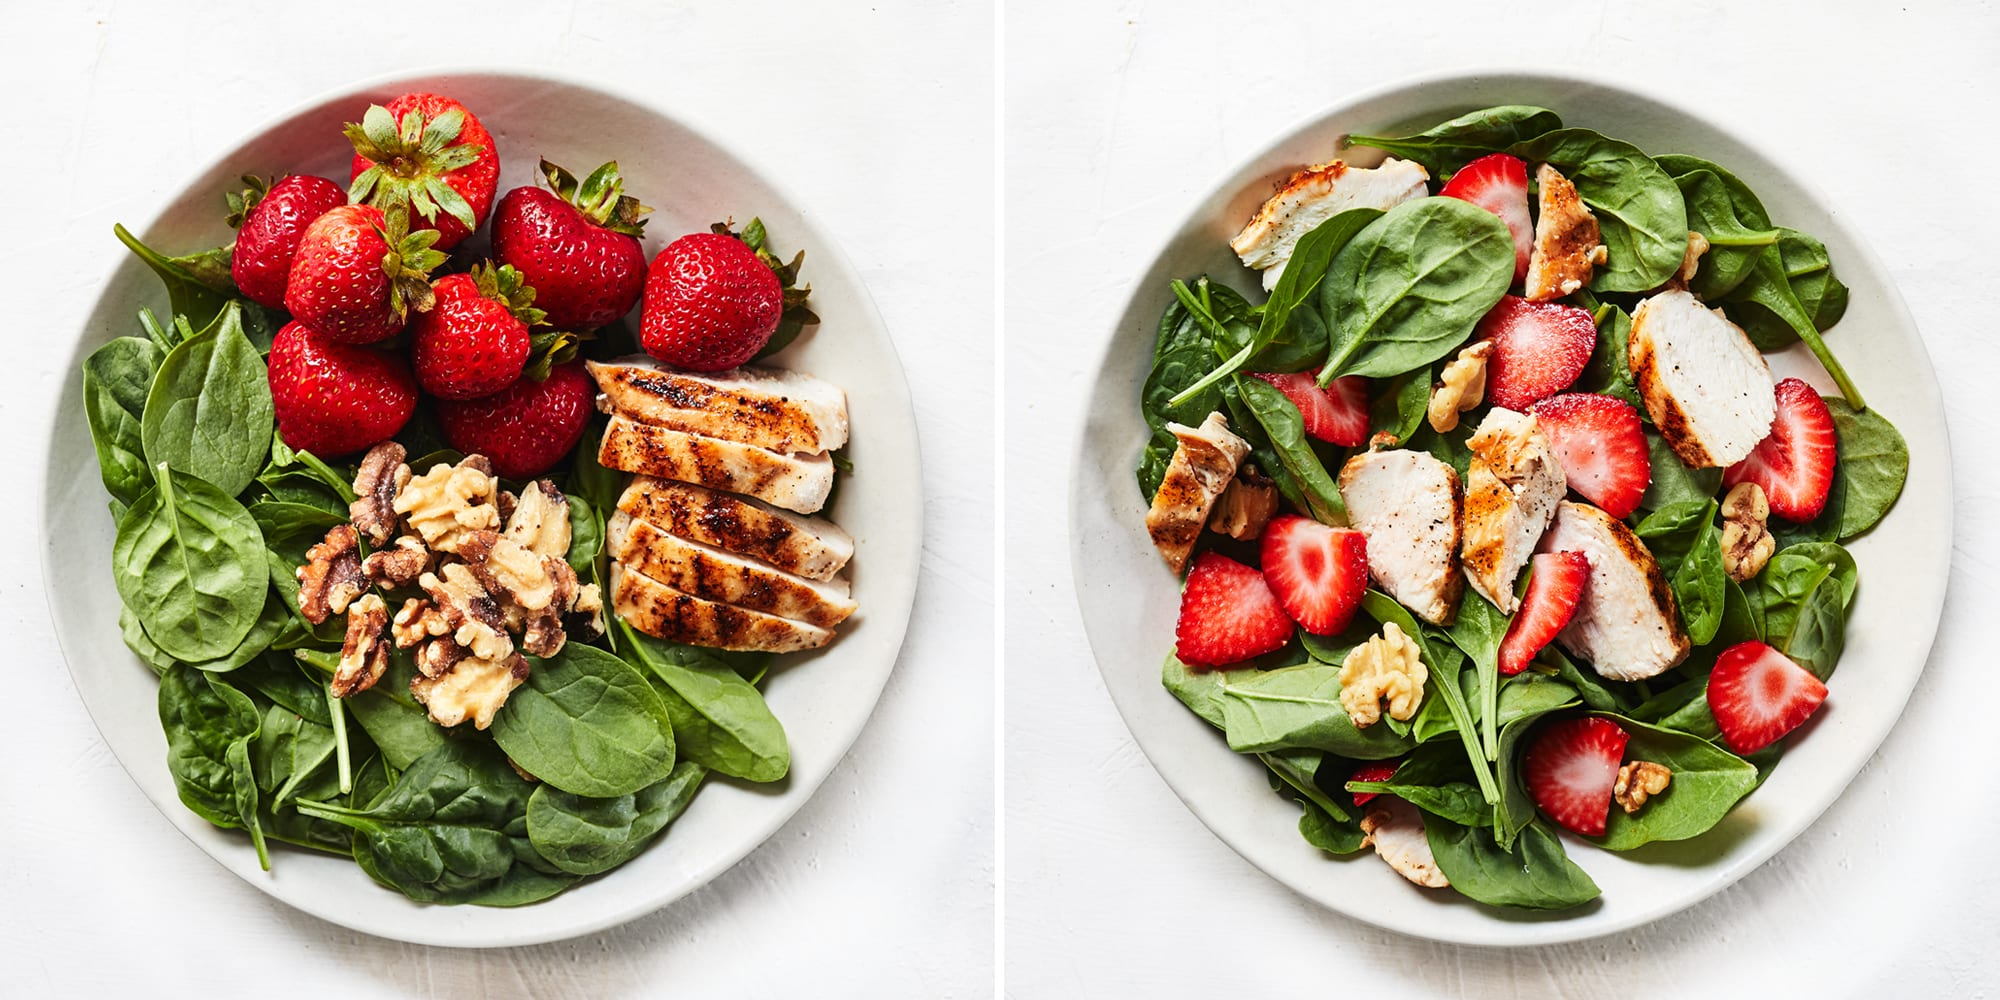 chicken strawberry and spinach salad recipe | passover recipes